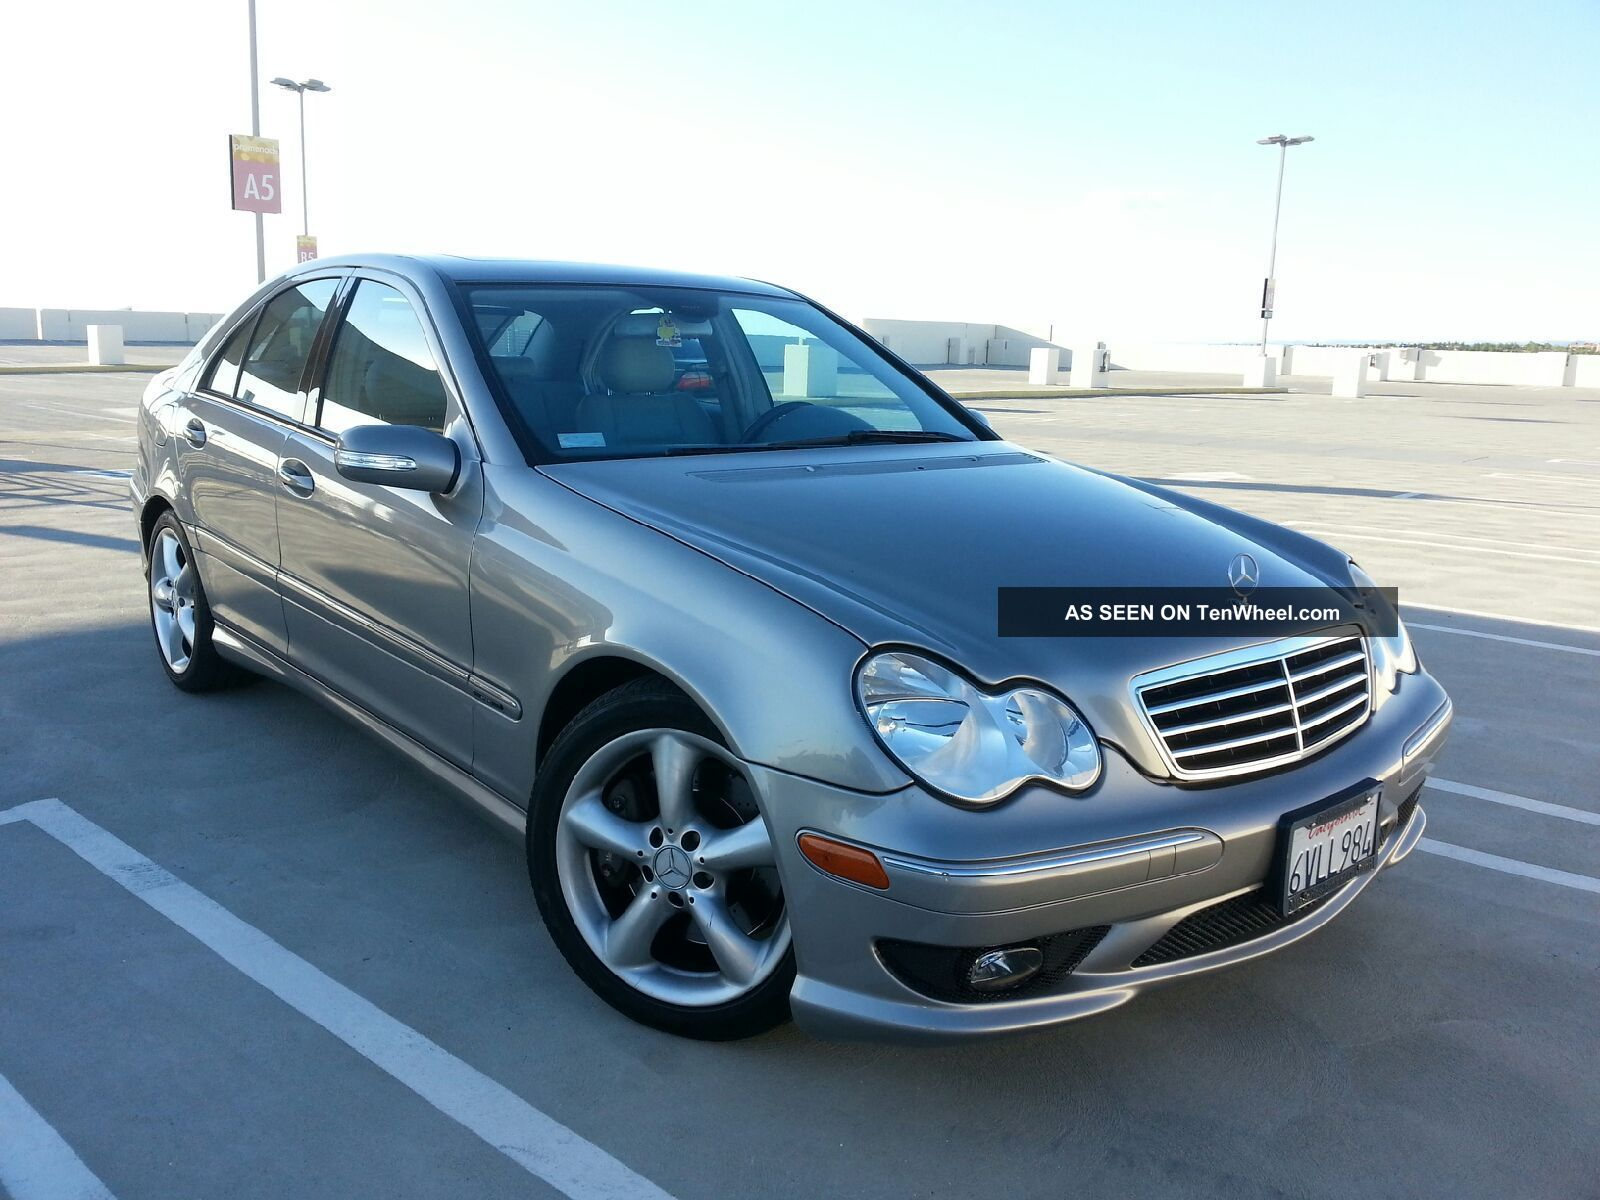 2005 mercedes benz c230 kompressor sedan 4 door 1 8l ForMercedes Benz C230 Kompressor 2005